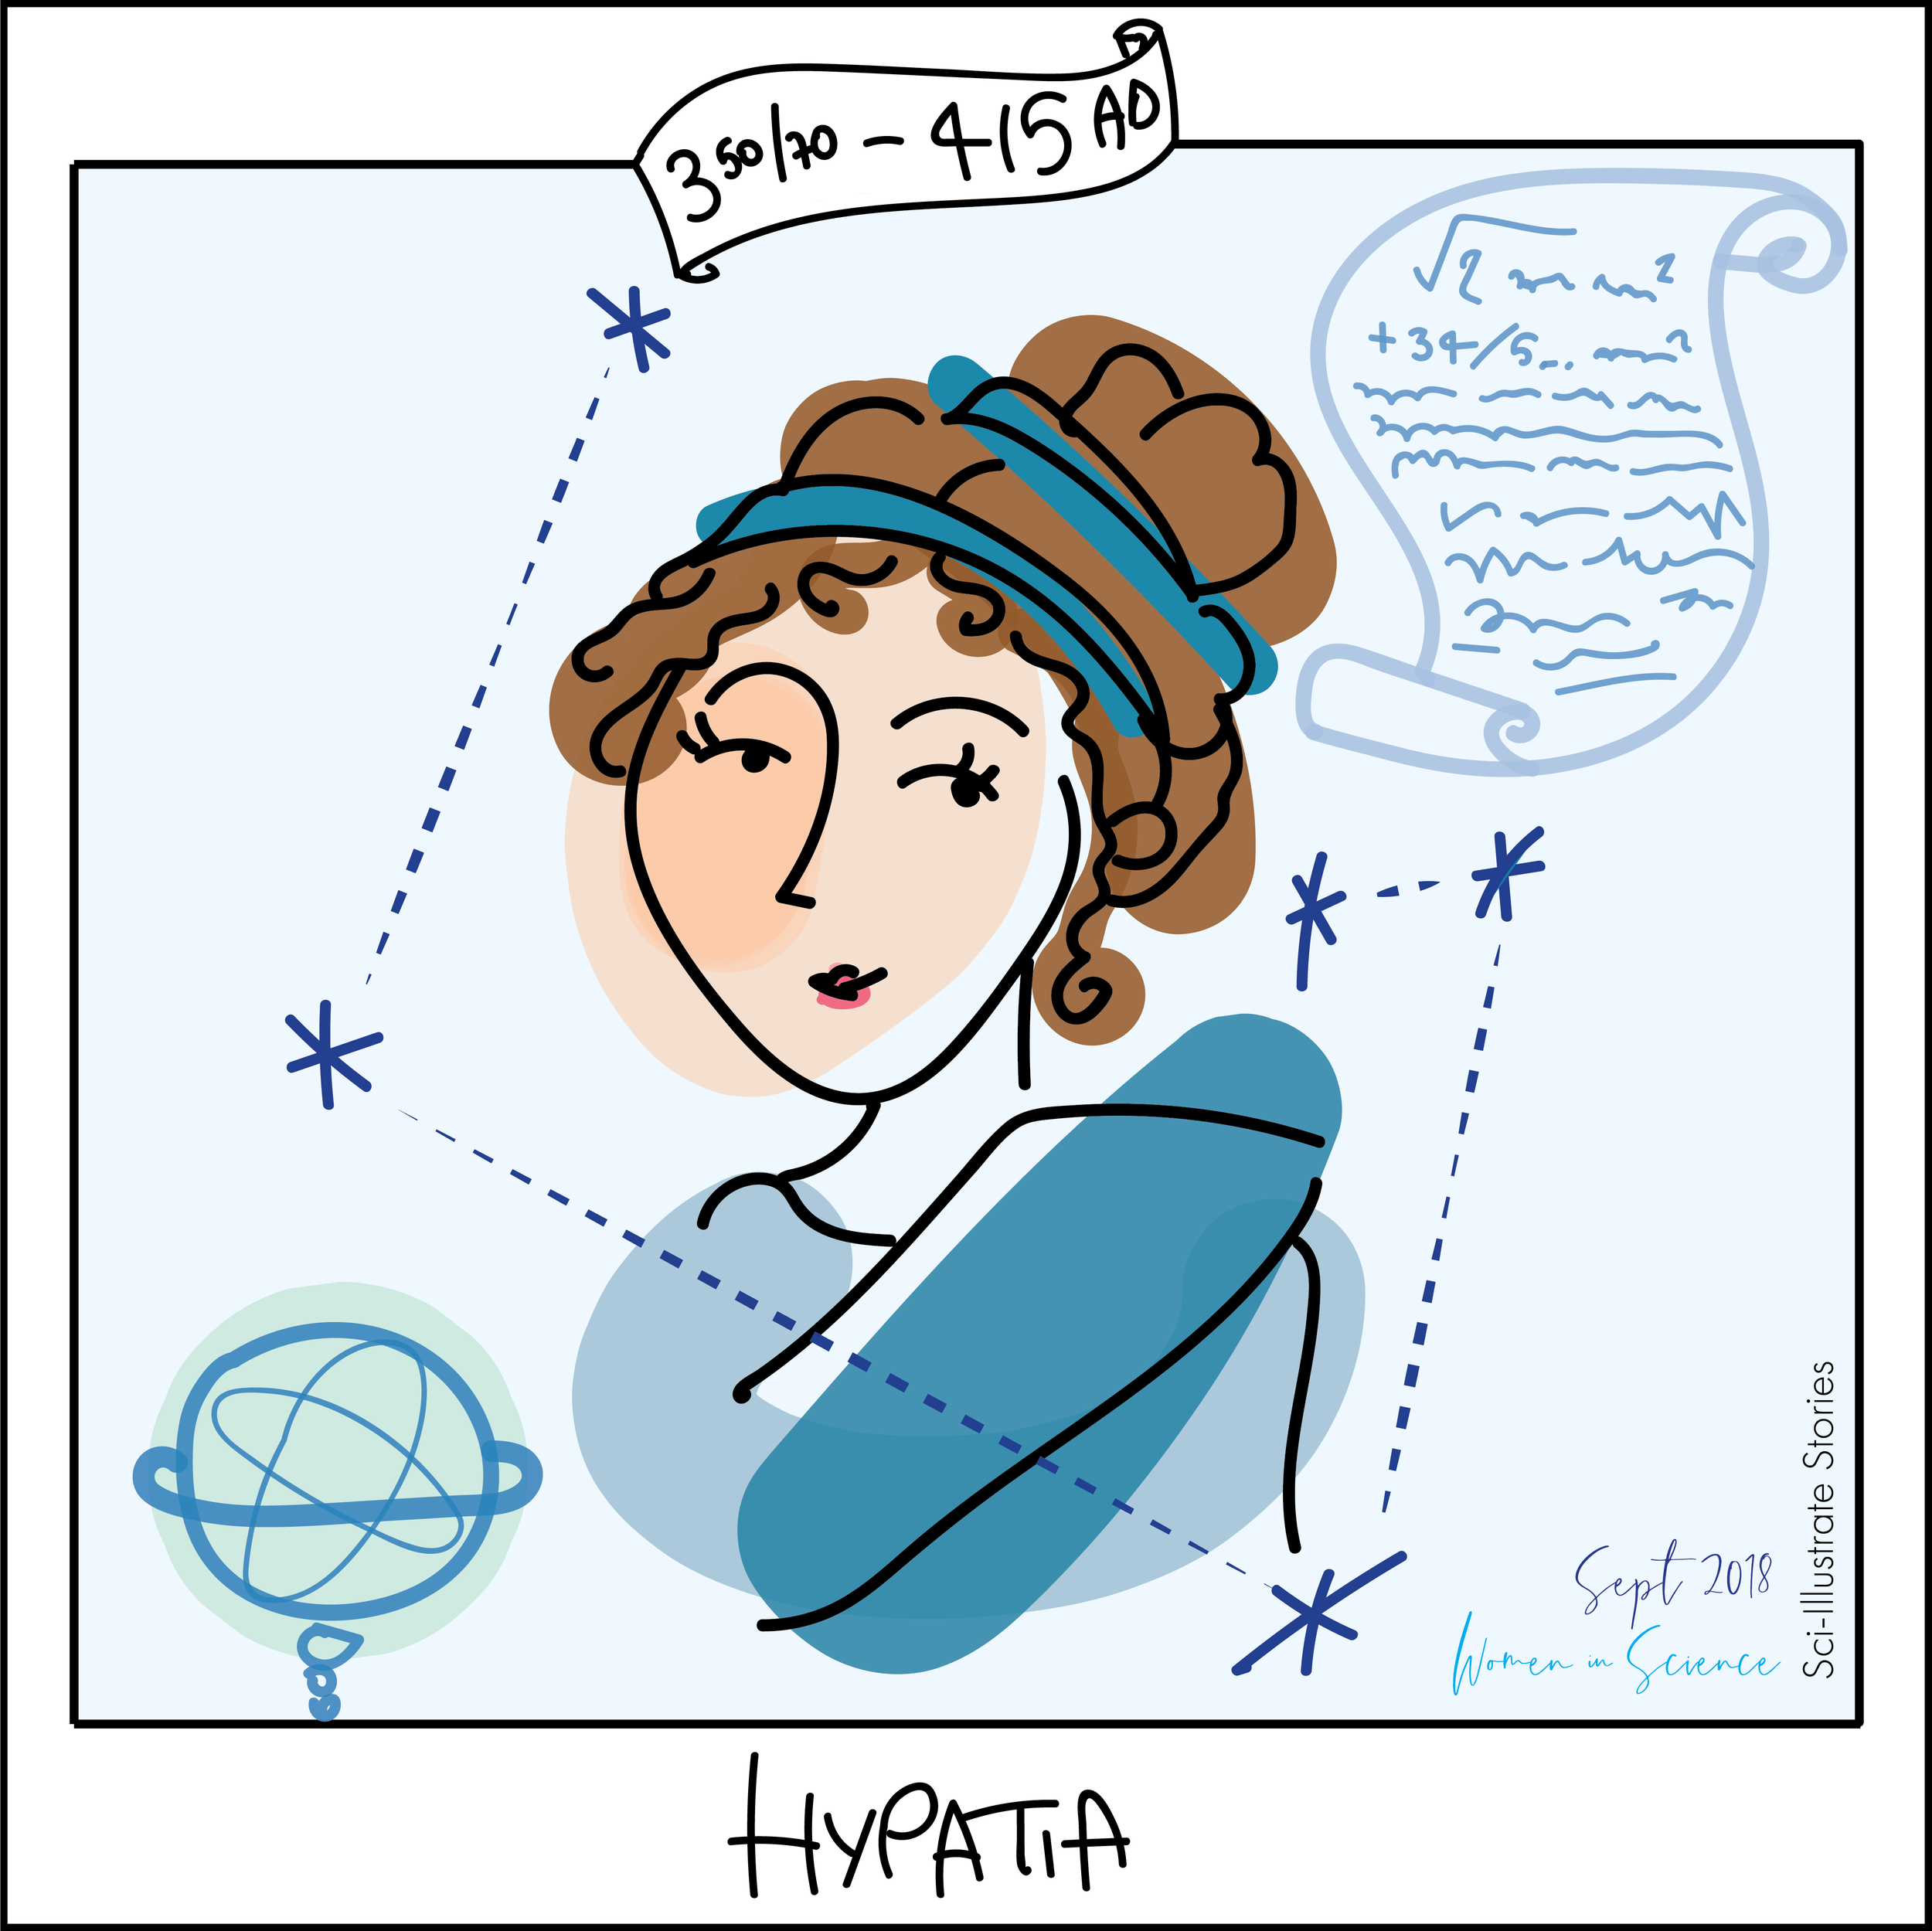 Hypatia_Women in Science_Sci-Illustrate.png